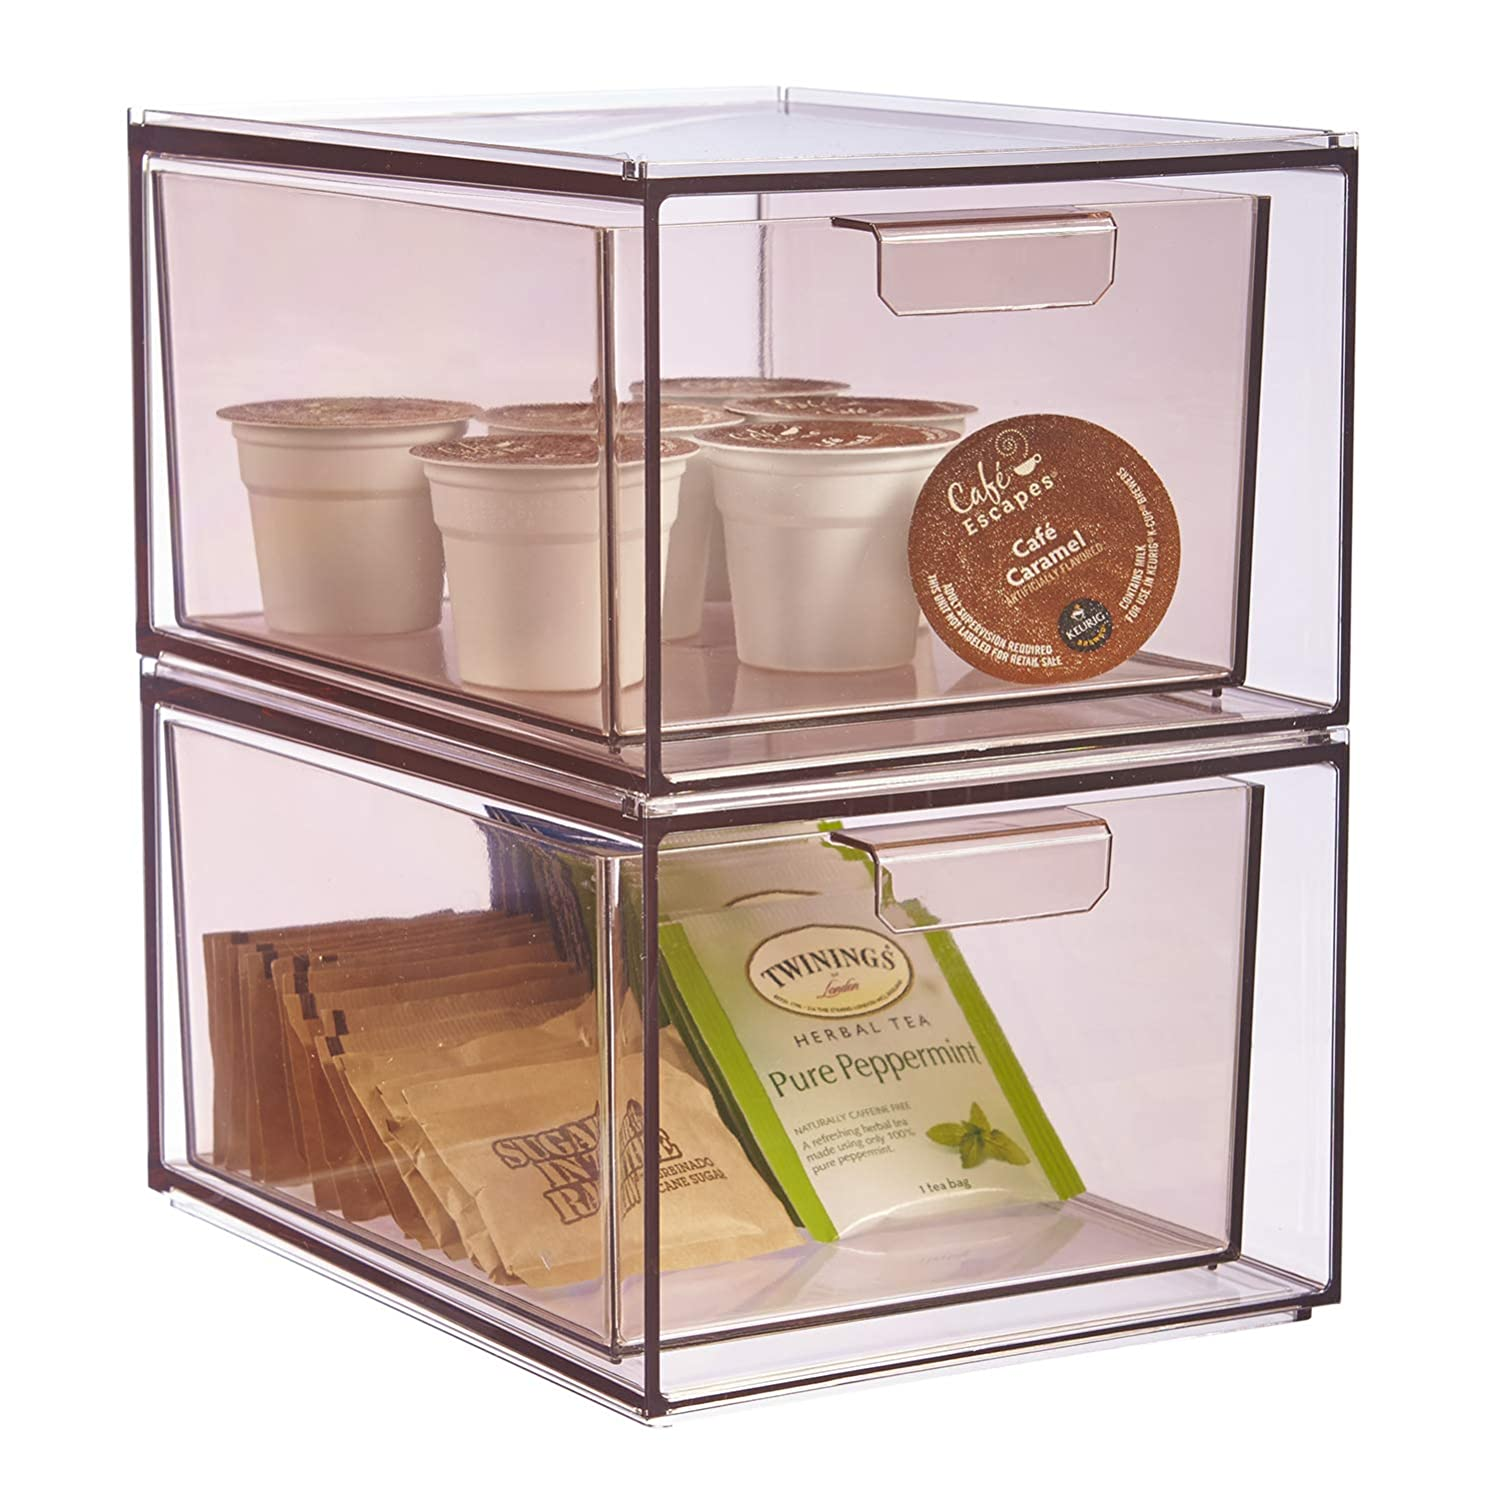 STORi Stackable Clear Plastic Kitchen Organizer Drawers | set of 2 | Mocha Mist